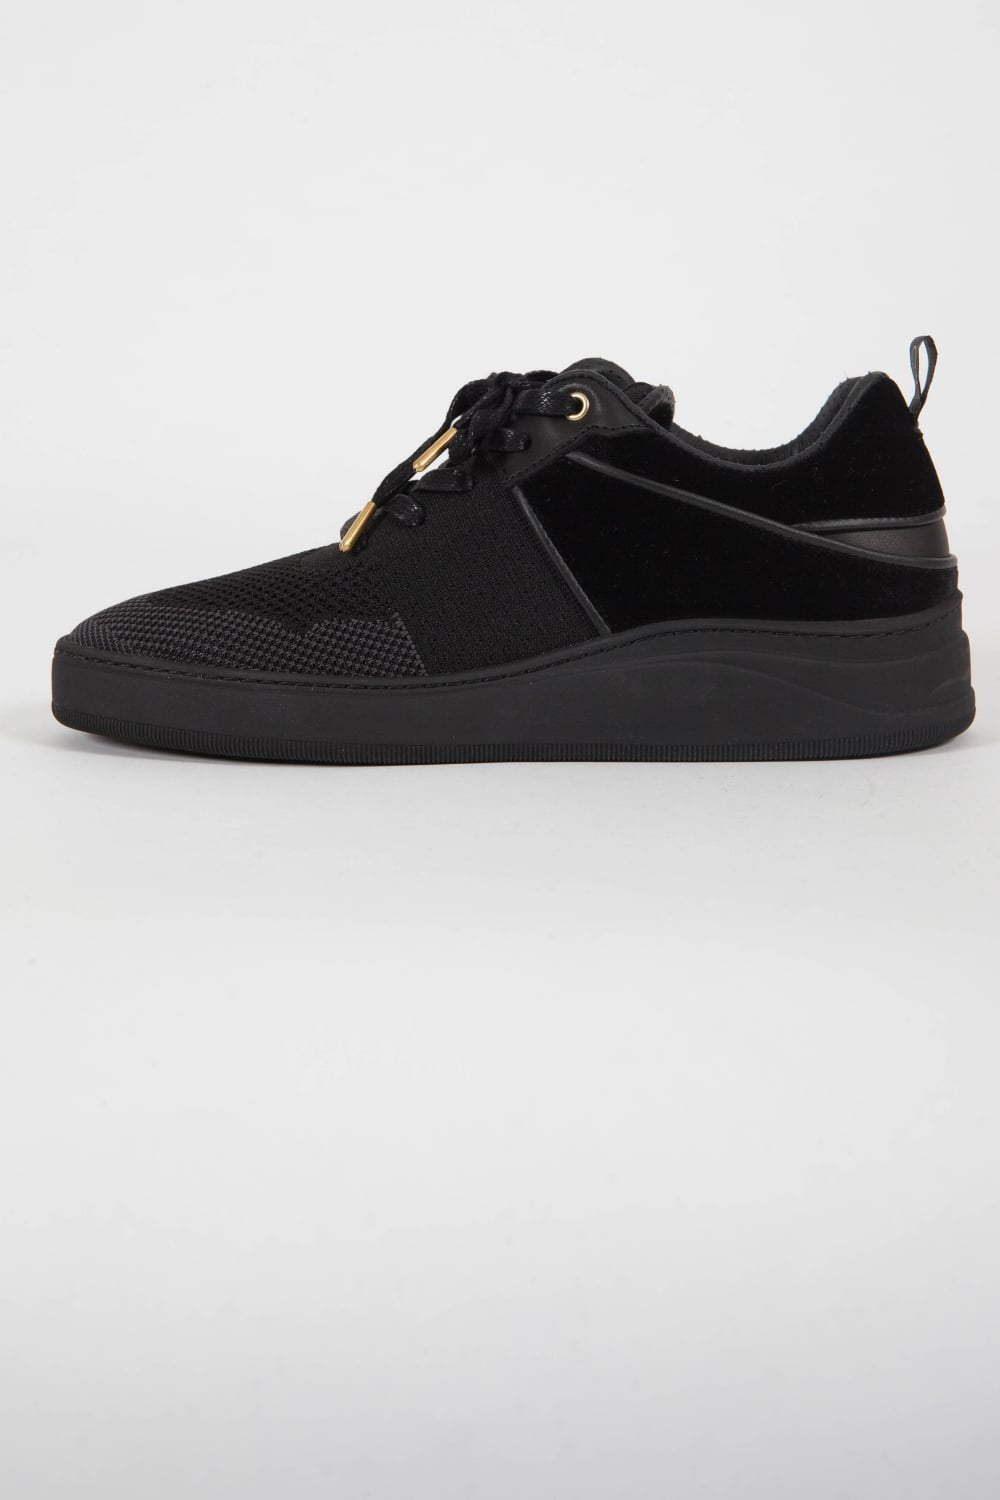 Mercer Amsterdam | Lowtop 3.0 Trainers